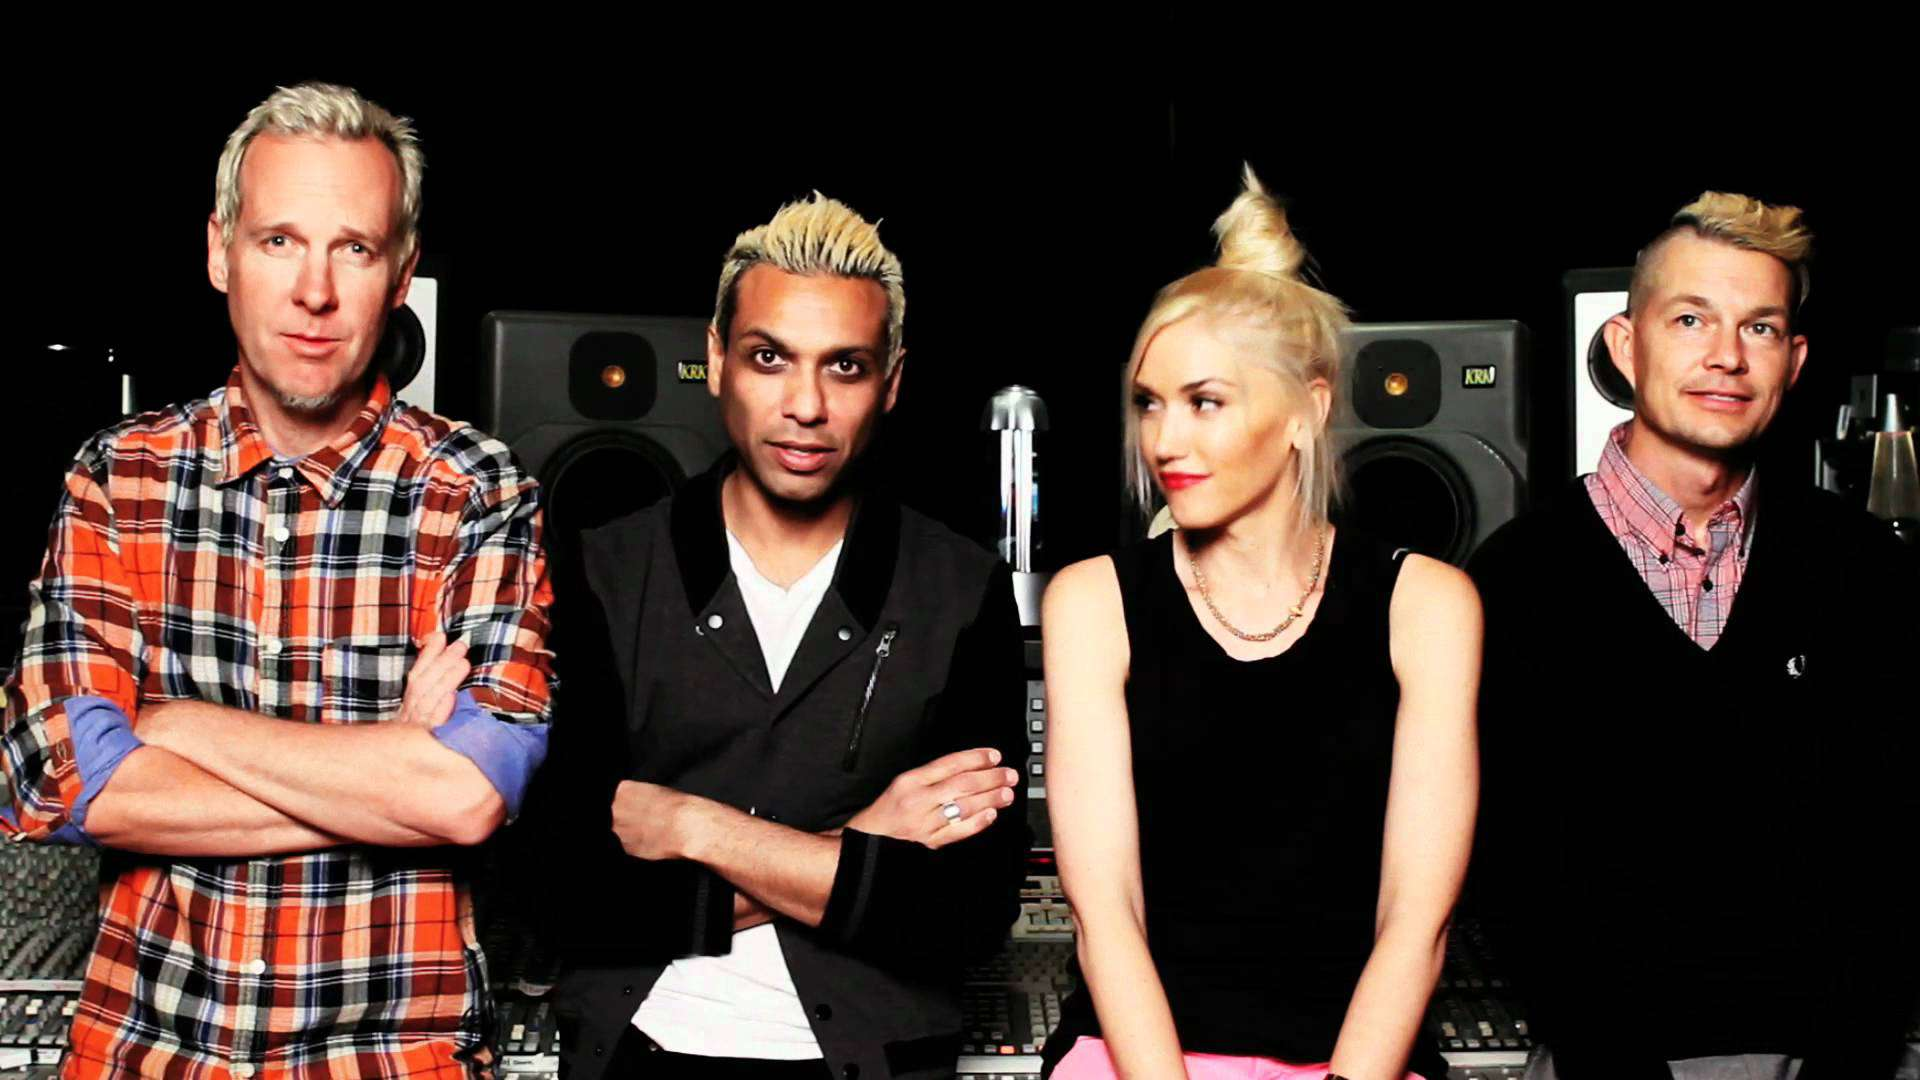 No Doubt – 90's band